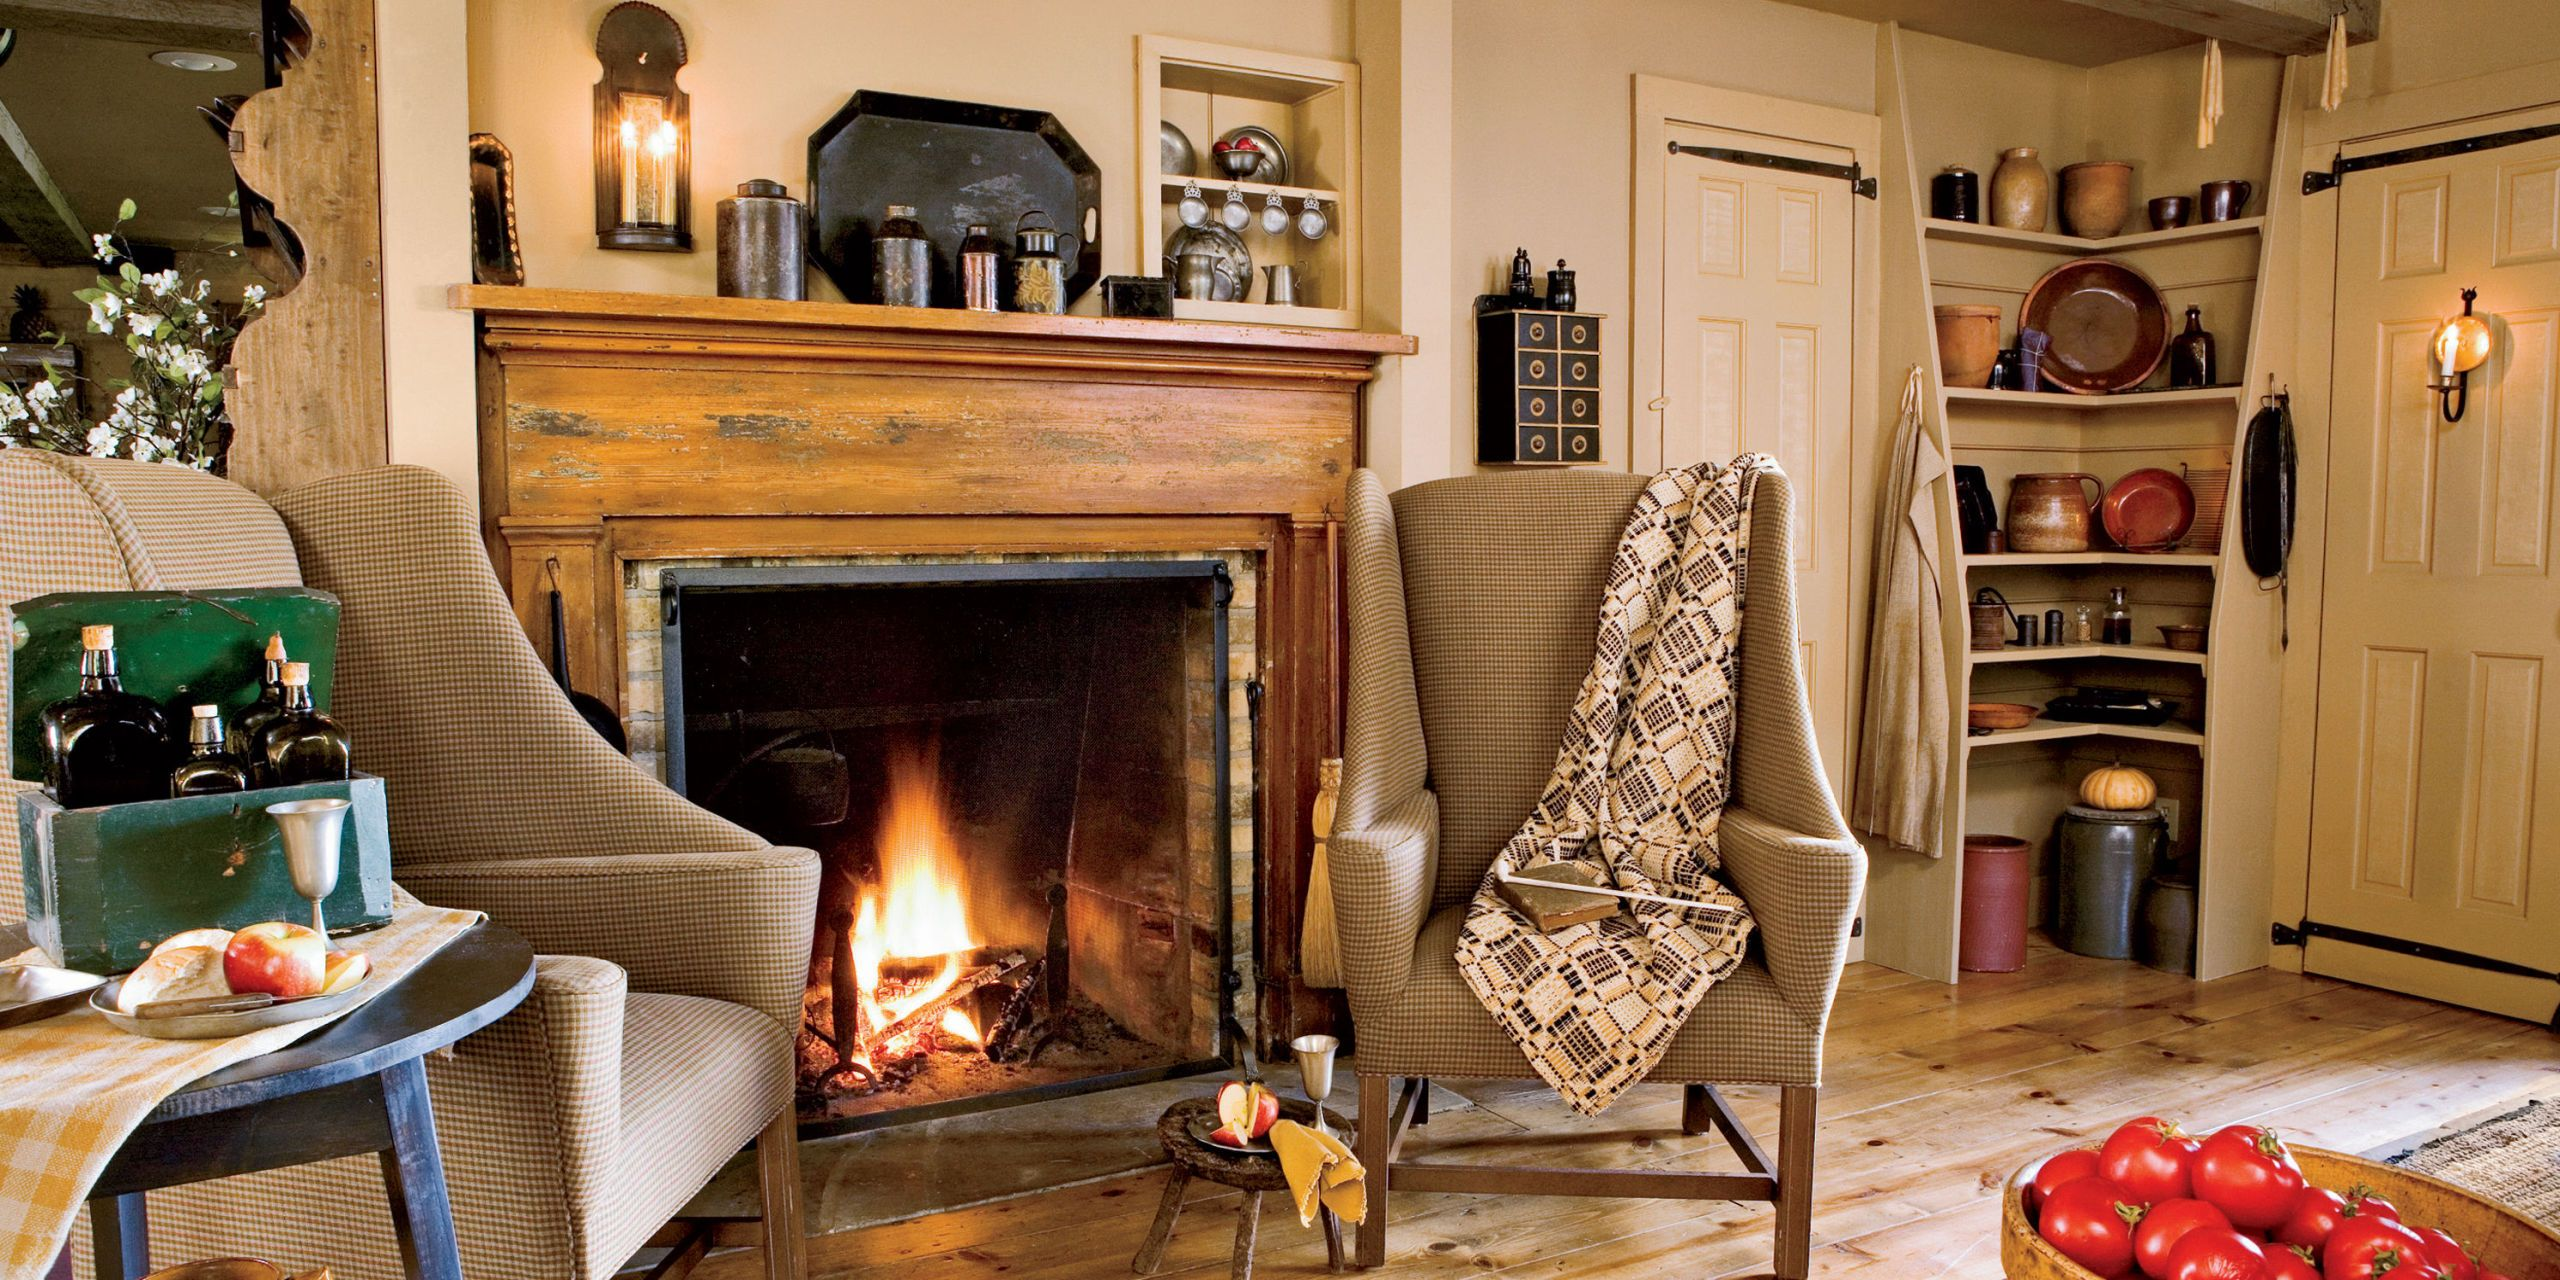 Attractive Stone, Slate, Wood, And More: Get Inspired To Re Do Your Living Room With  Our Favorite Fireplace Designs And Mantel Ideas.